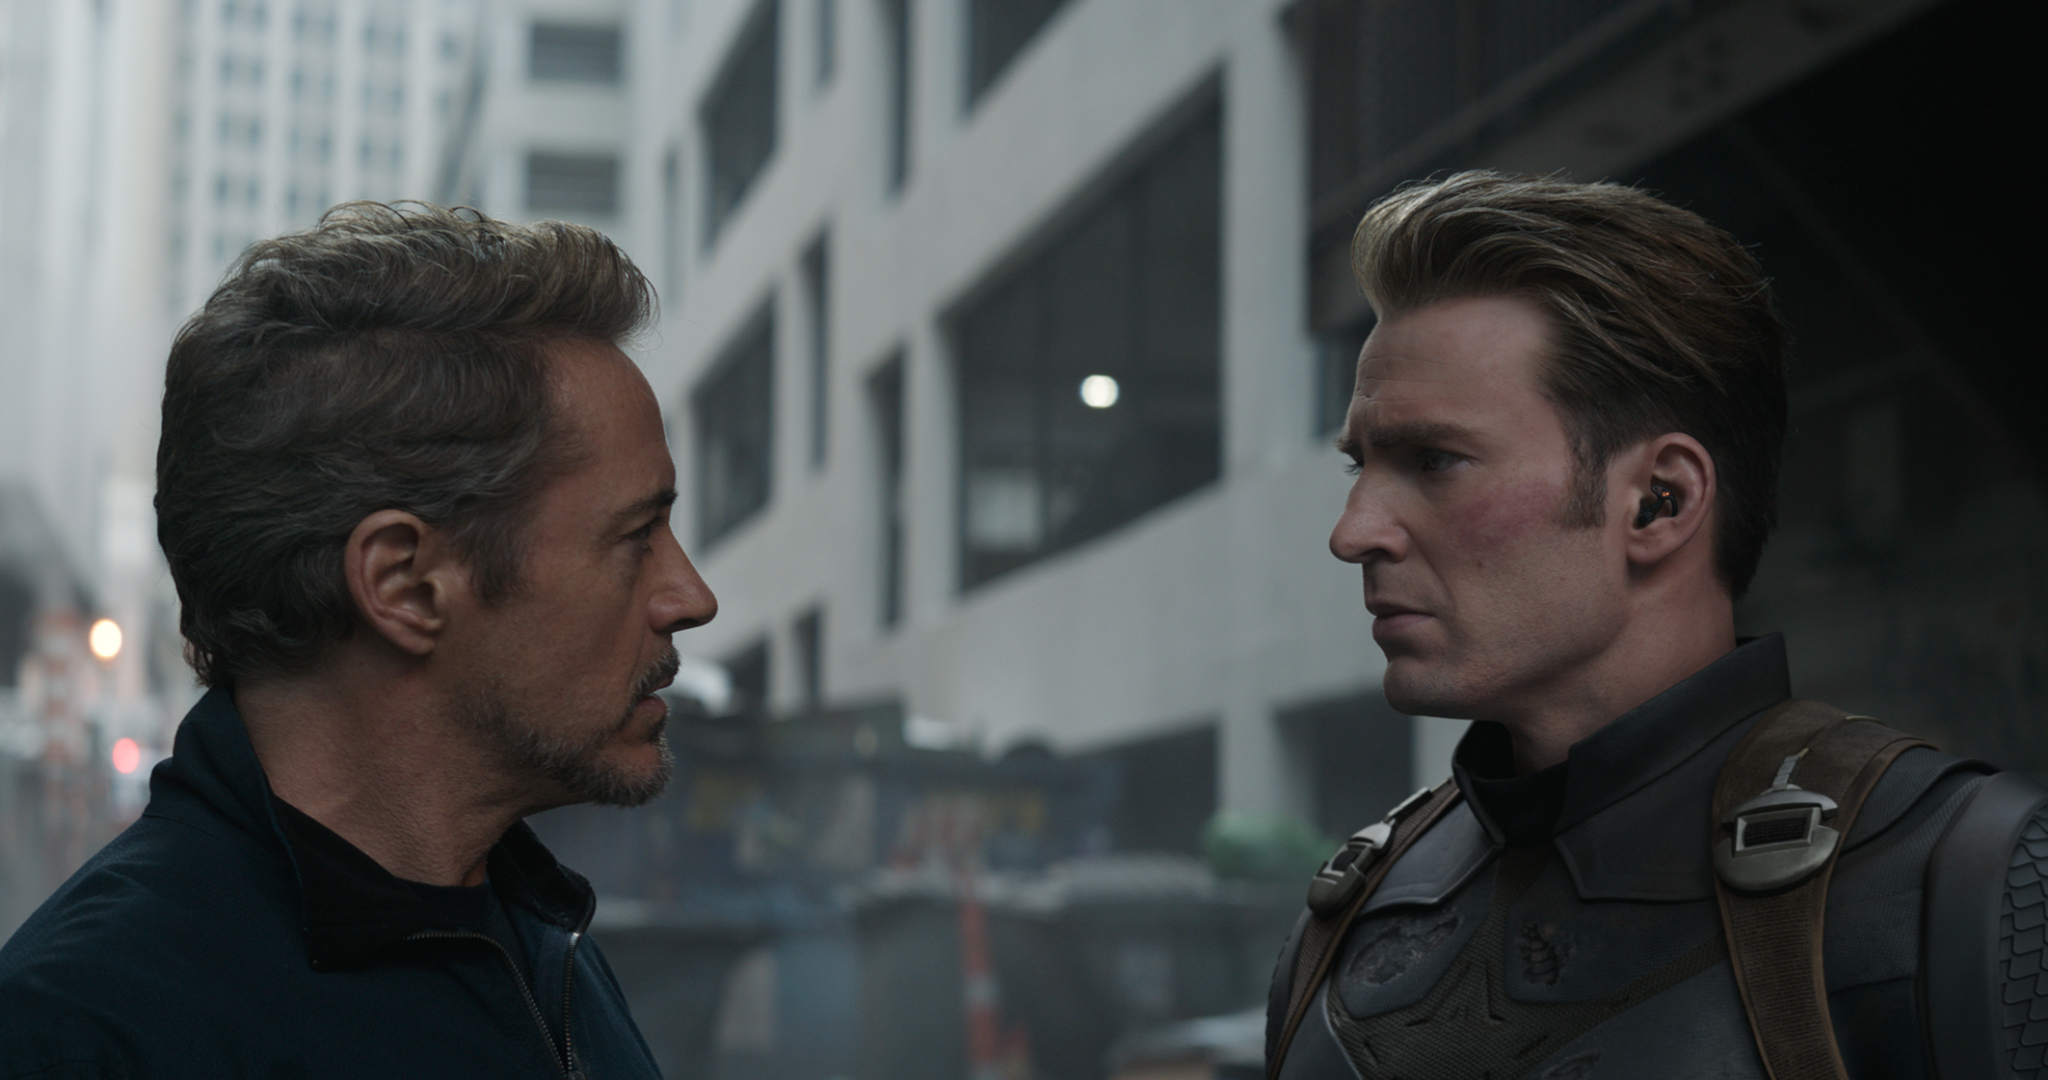 RECORD BREAKING. 'Endgame' dislodges 'Titanic' to be the 2nd highest-grossing movie of all time. Still courtesy of Marvel Studios